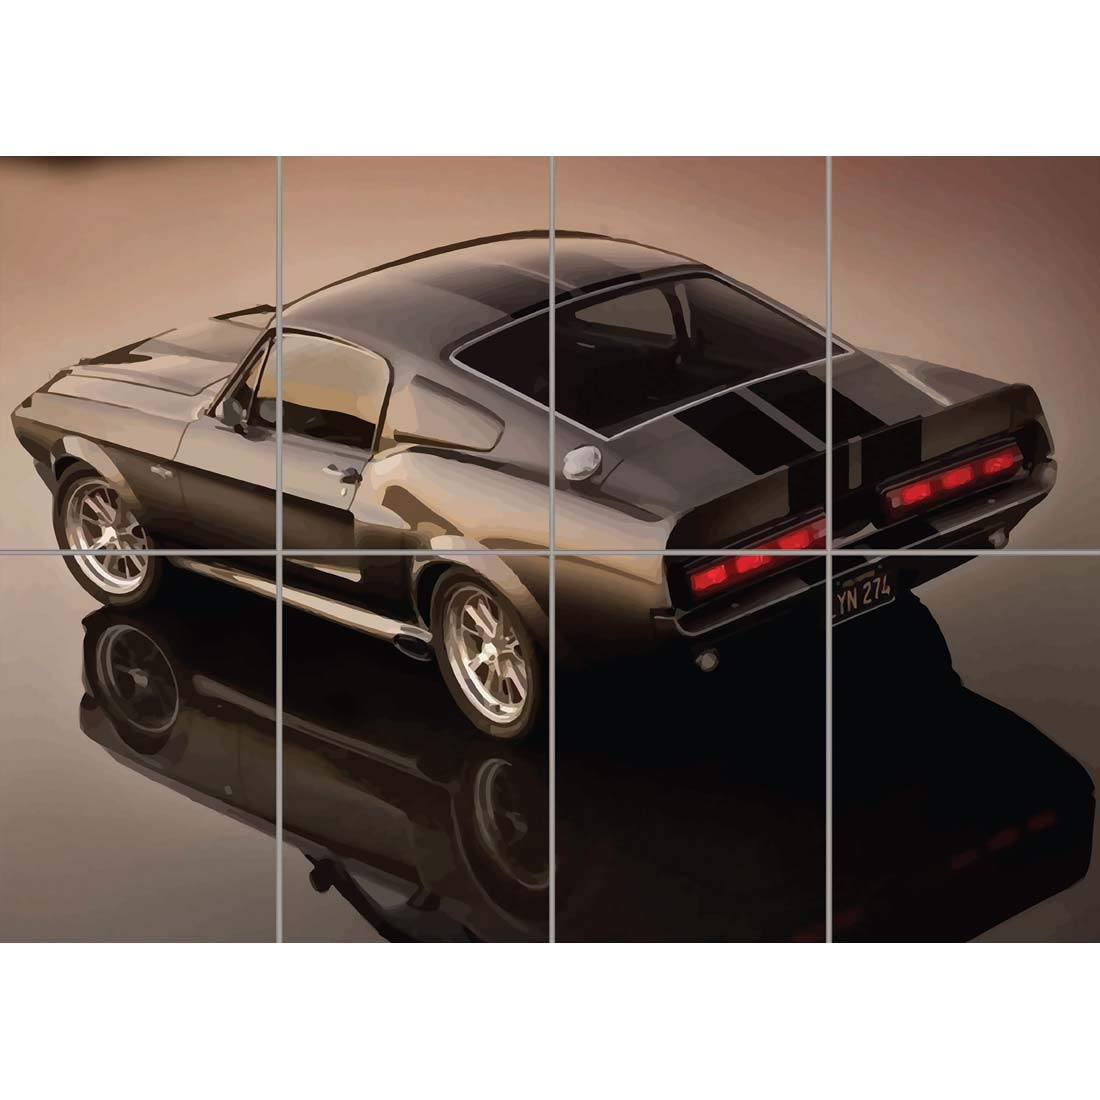 Eleanor 1967 ford mustang shelby gt500 giant poster art print b1240